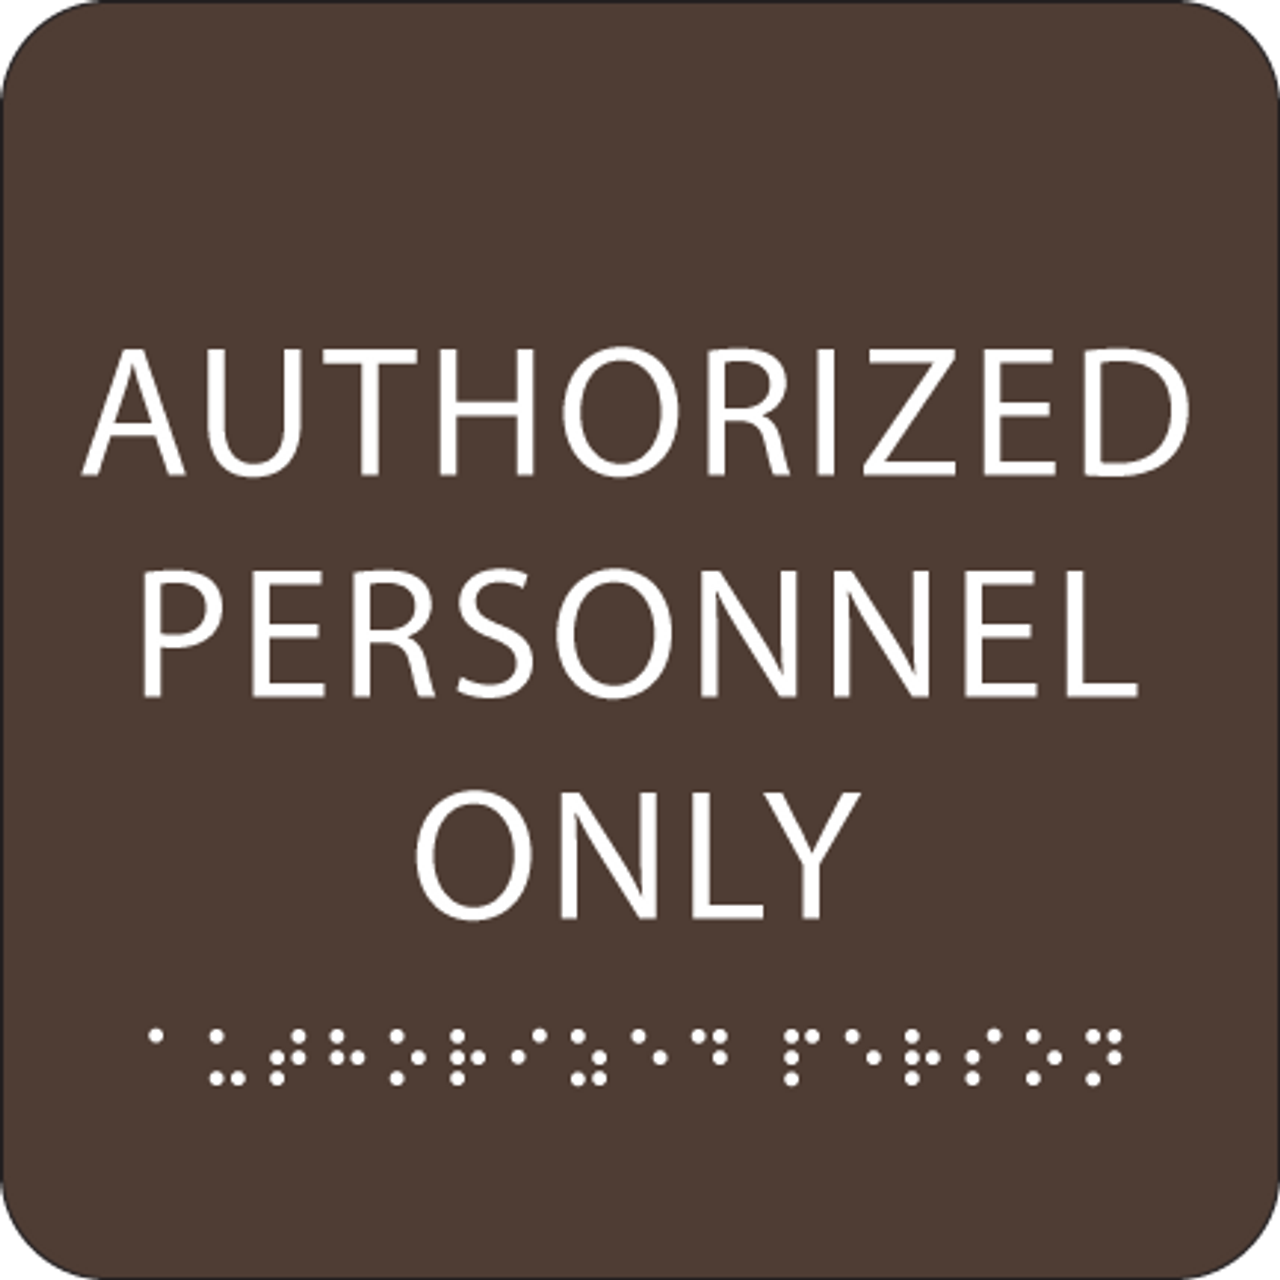 Dark Brown Authorized Personnel Only Sign